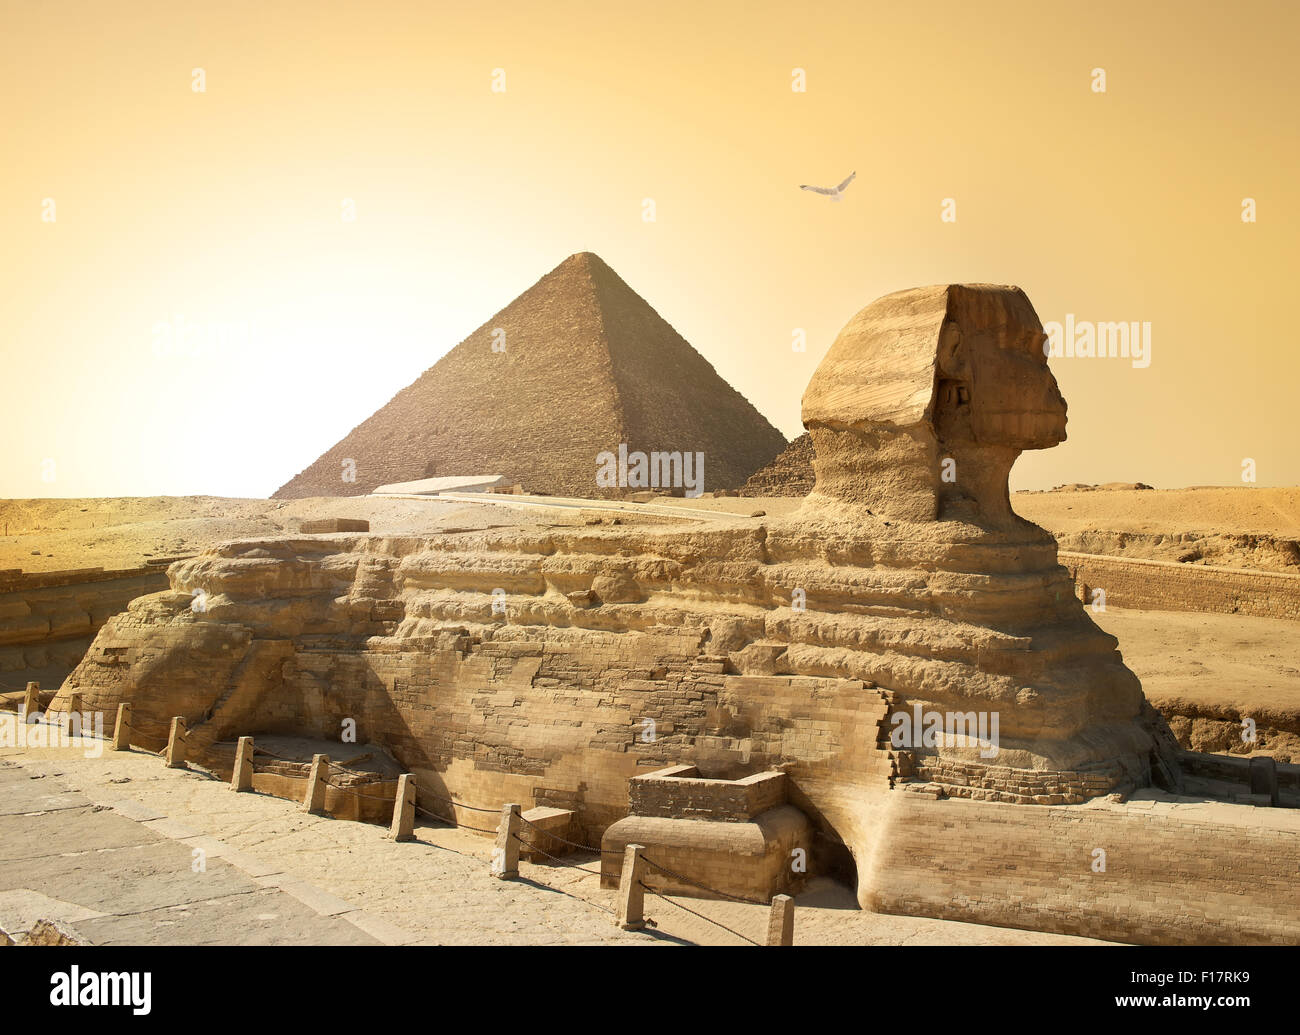 Bird over sphinx and pyramid in egyptian desert - Stock Image